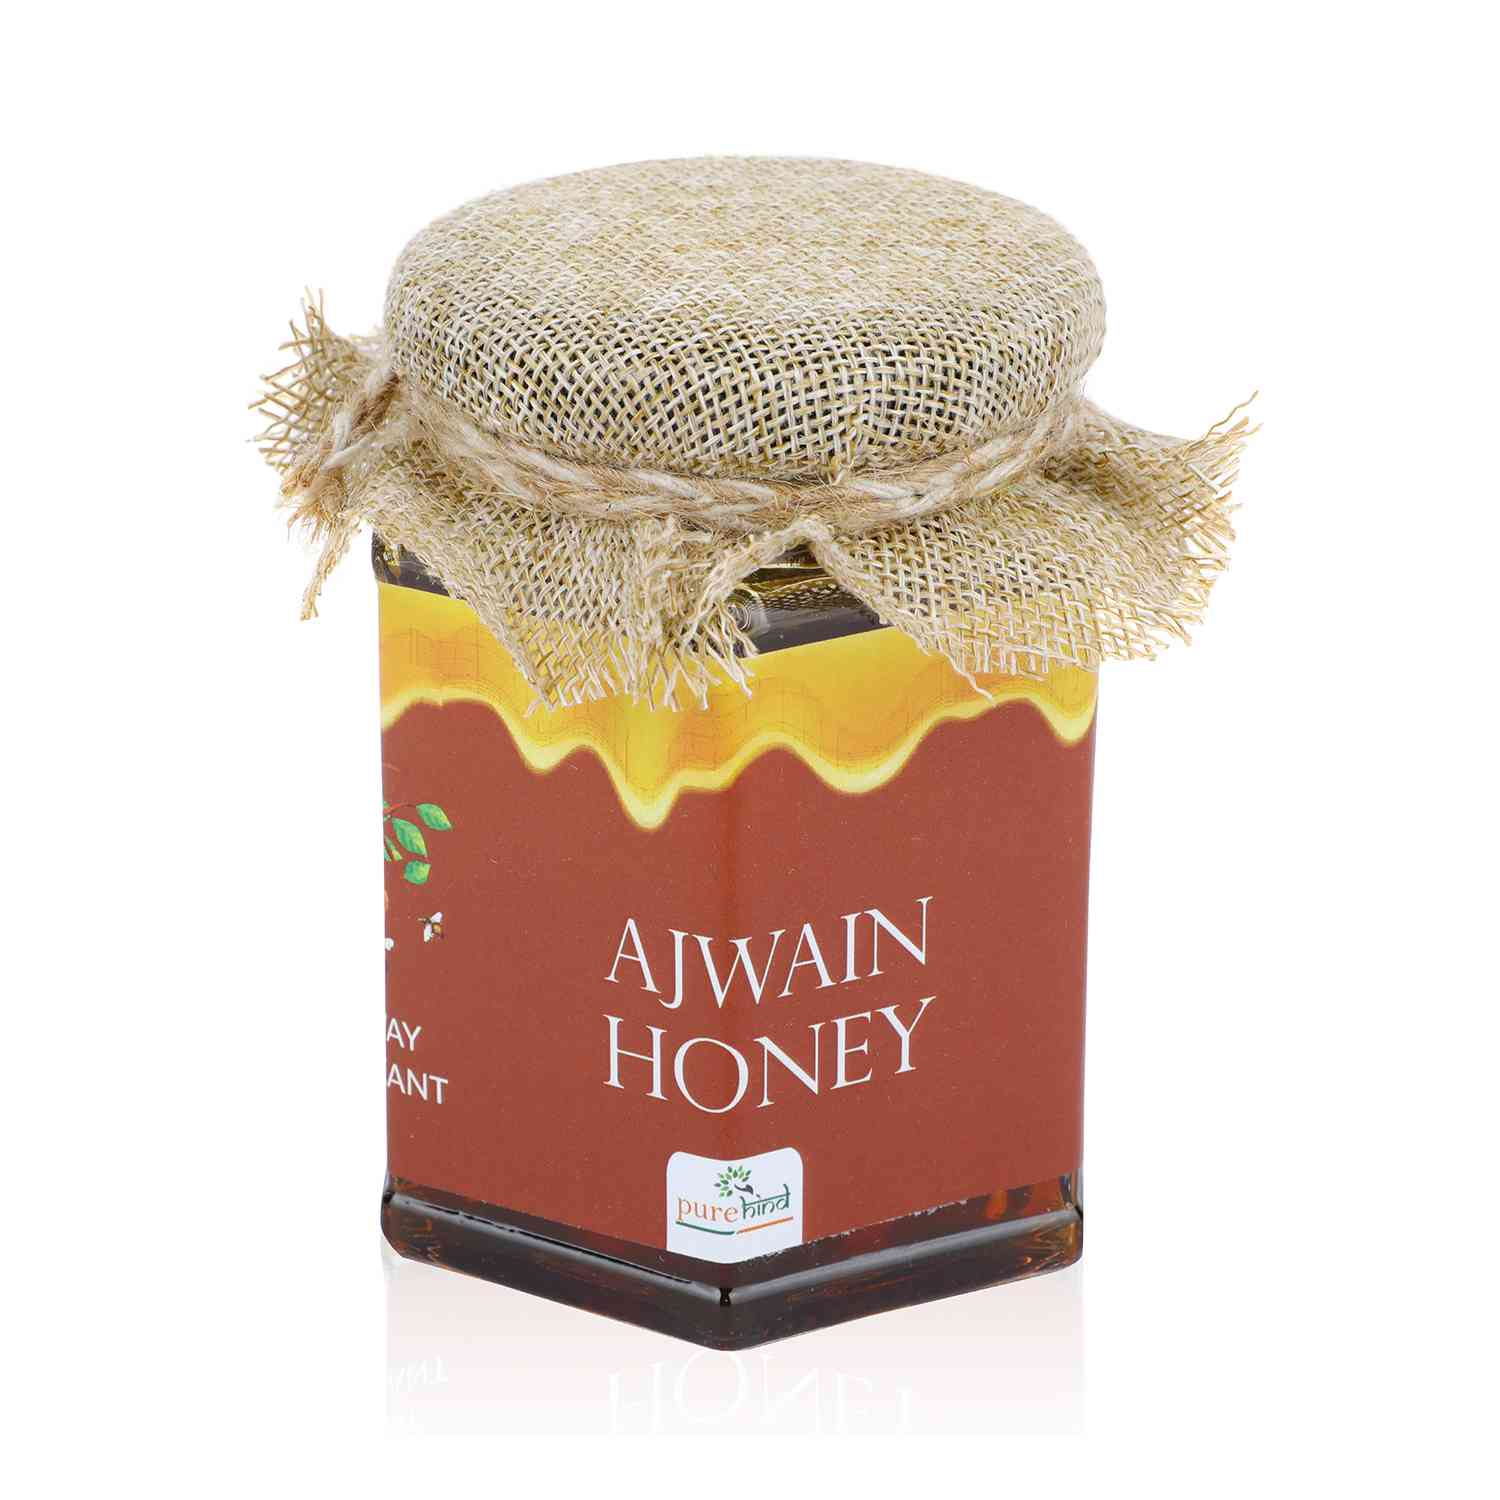 PUREHIND AJWAIN HONEY